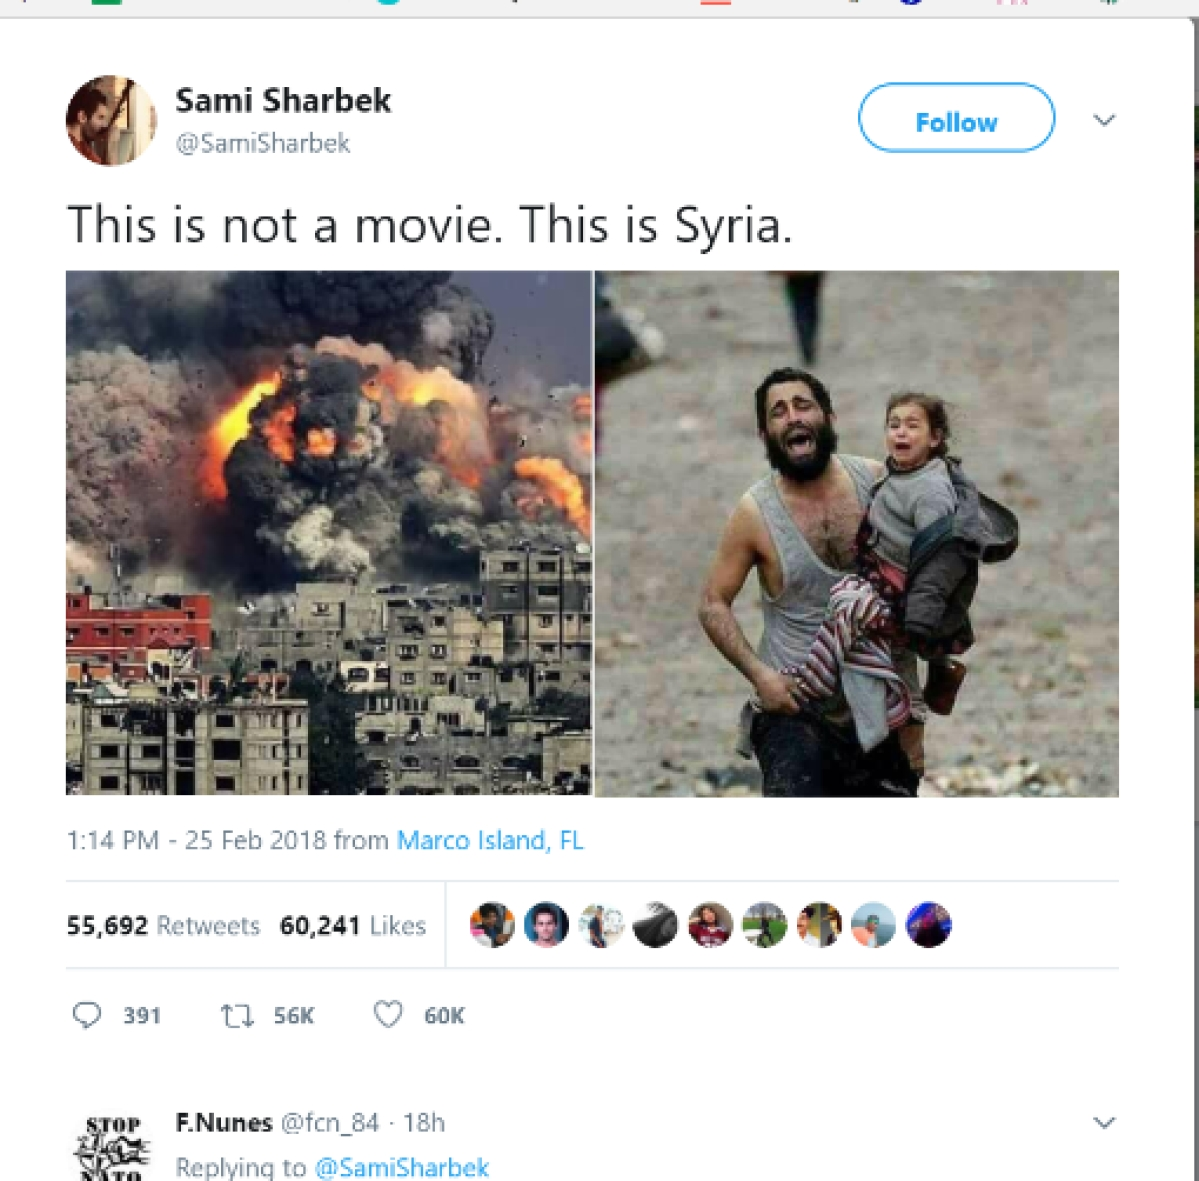 Fake viral images posted to show war-torn Syria.